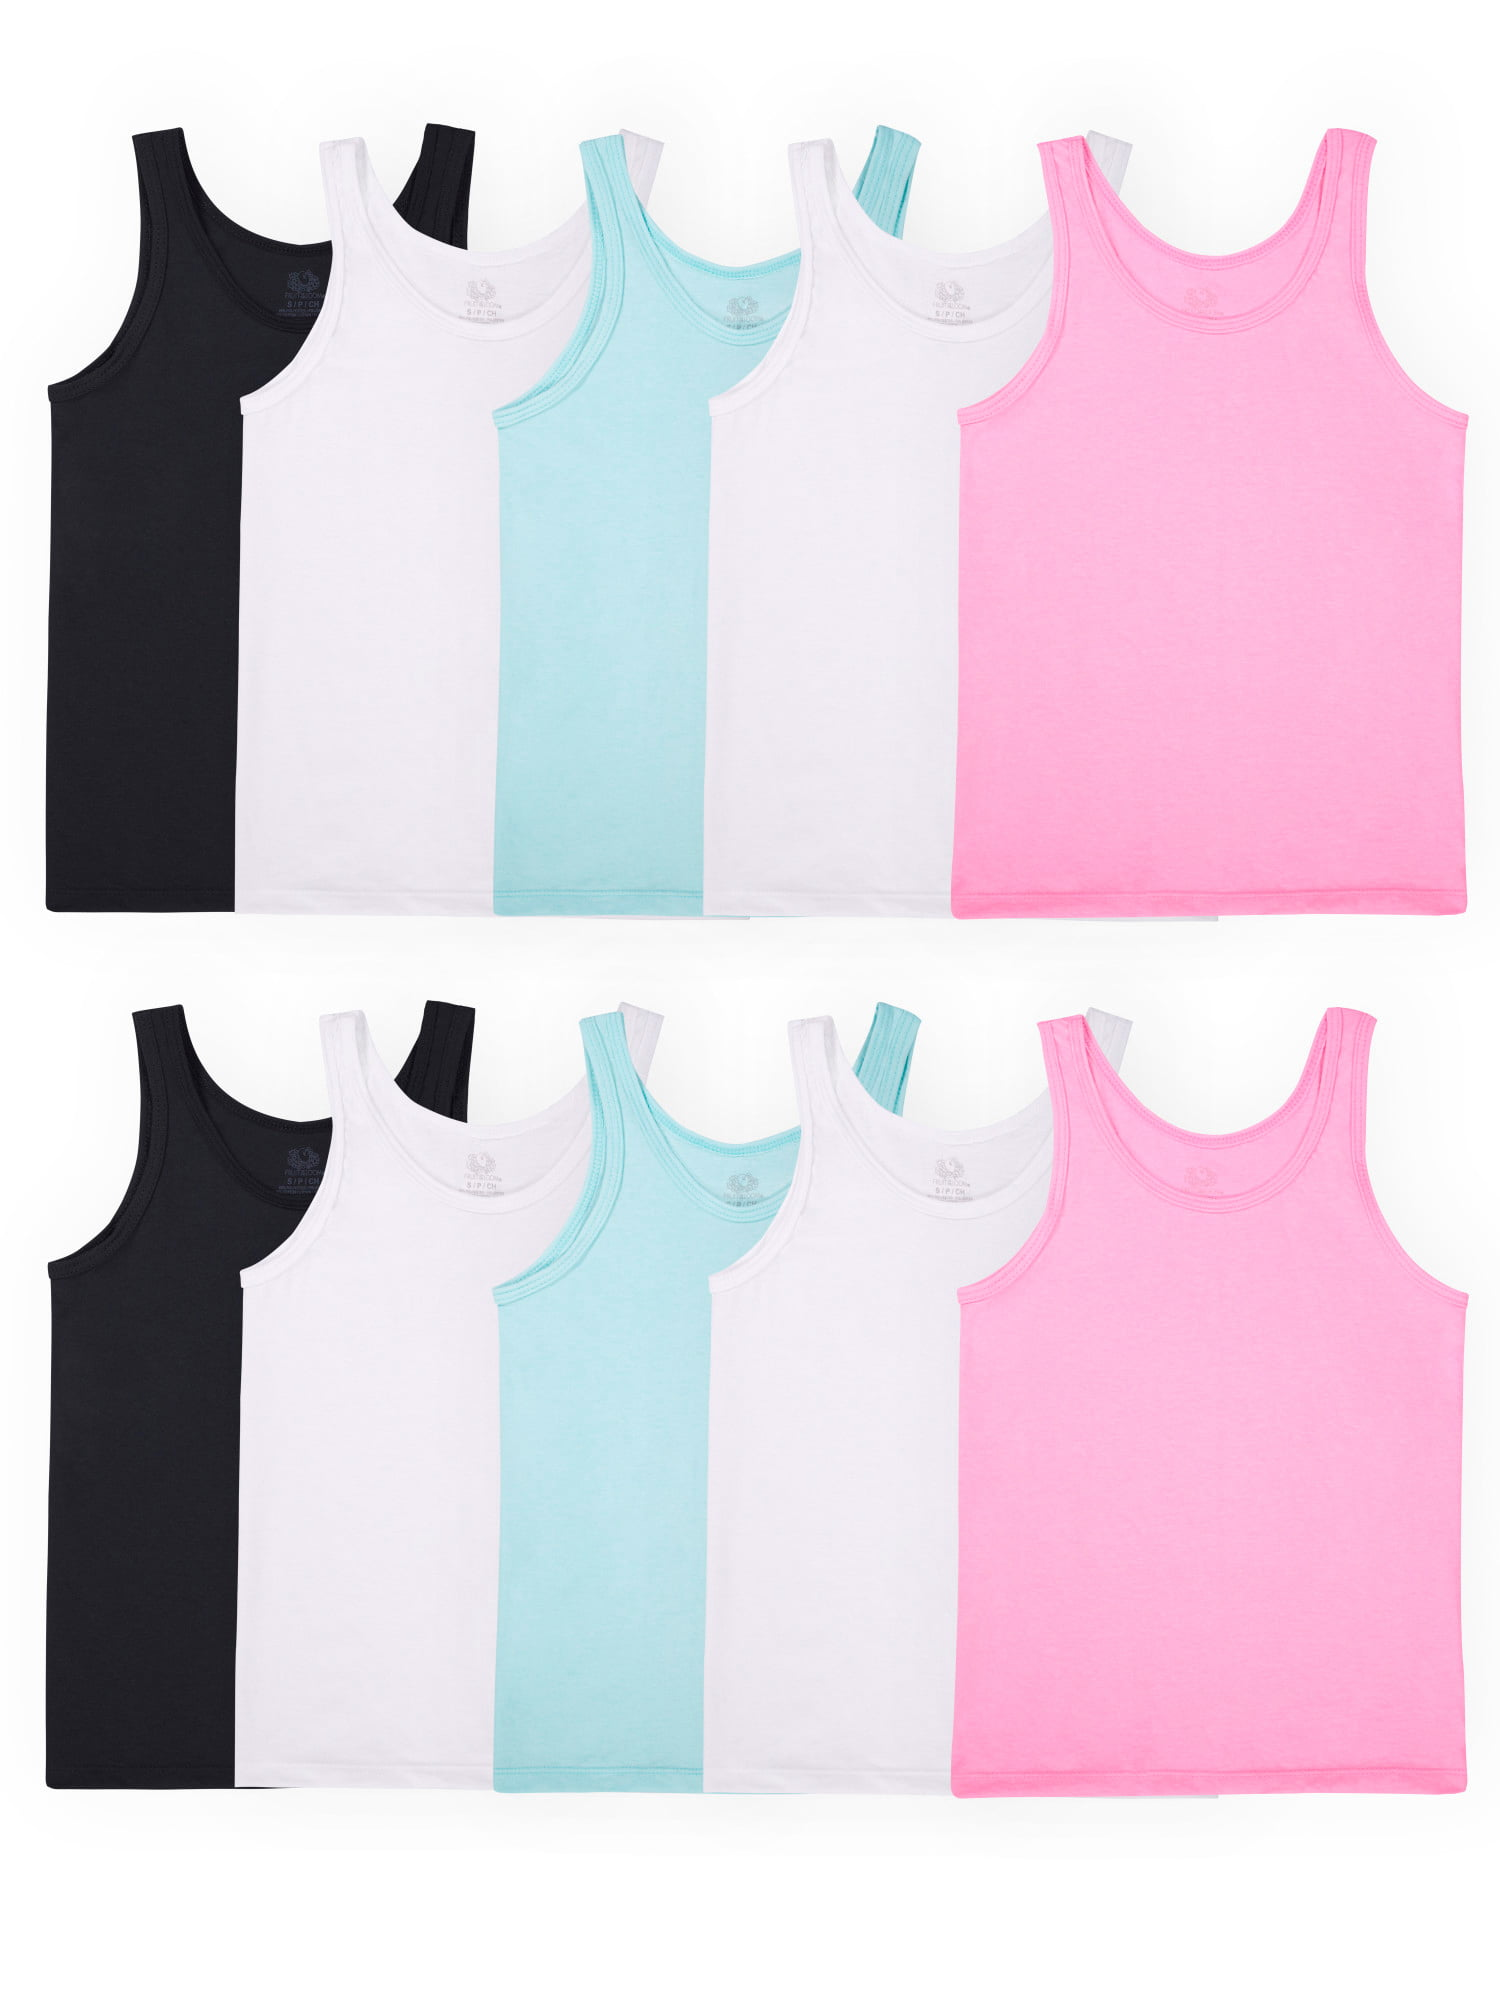 Fruit of the Loom Girls Girls Undershirts Underwear